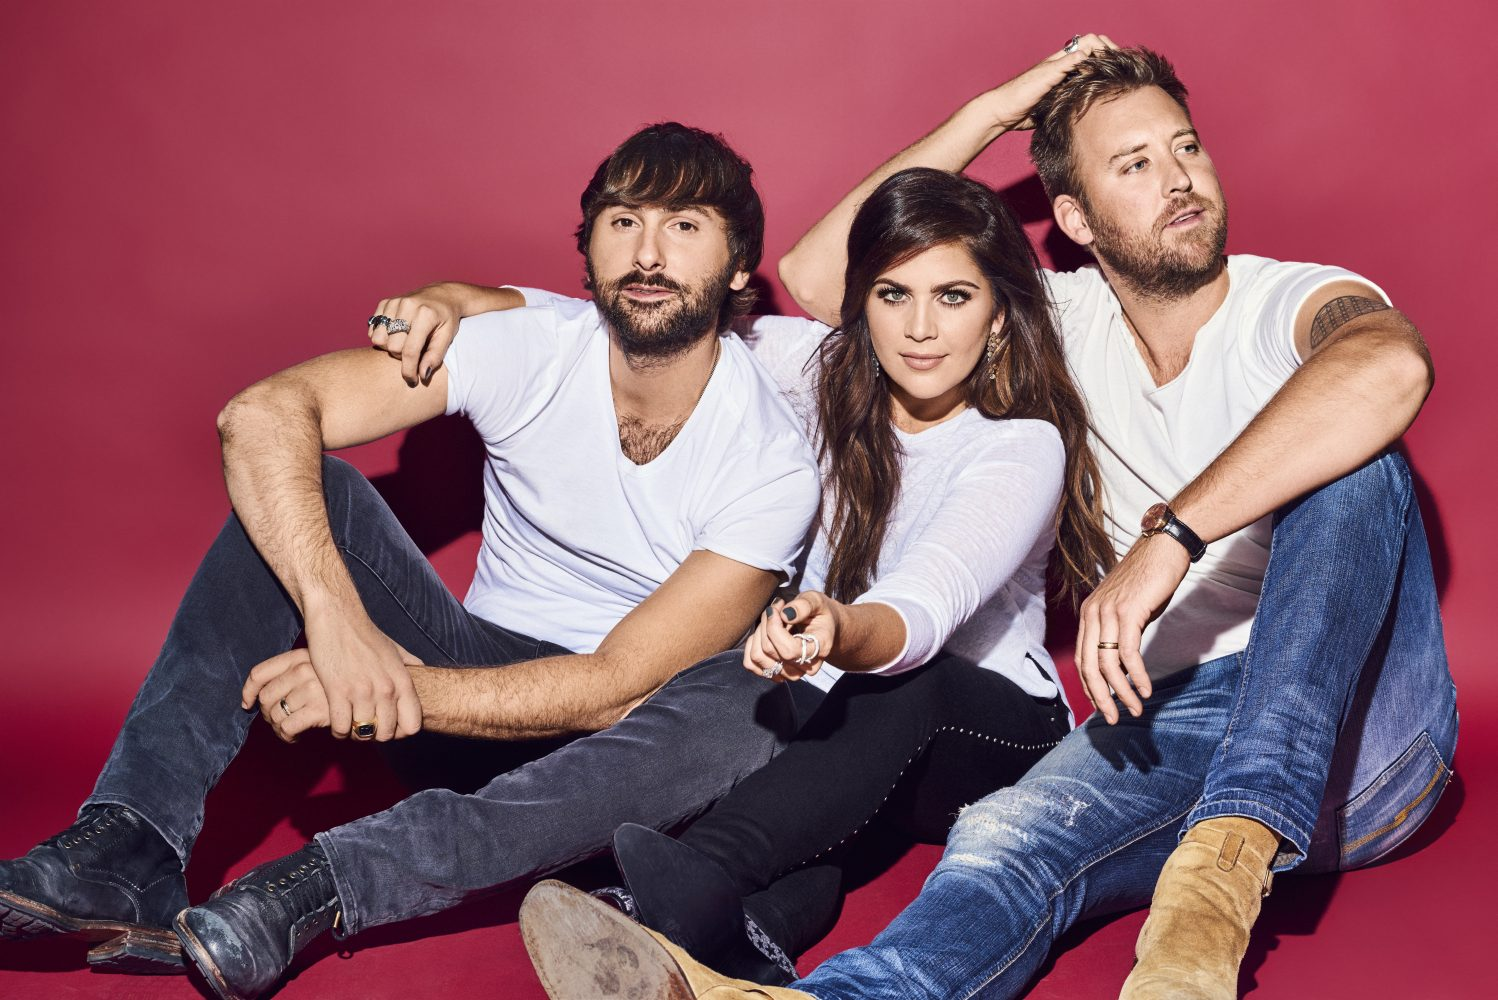 Lady Antebellum: The Cover Story